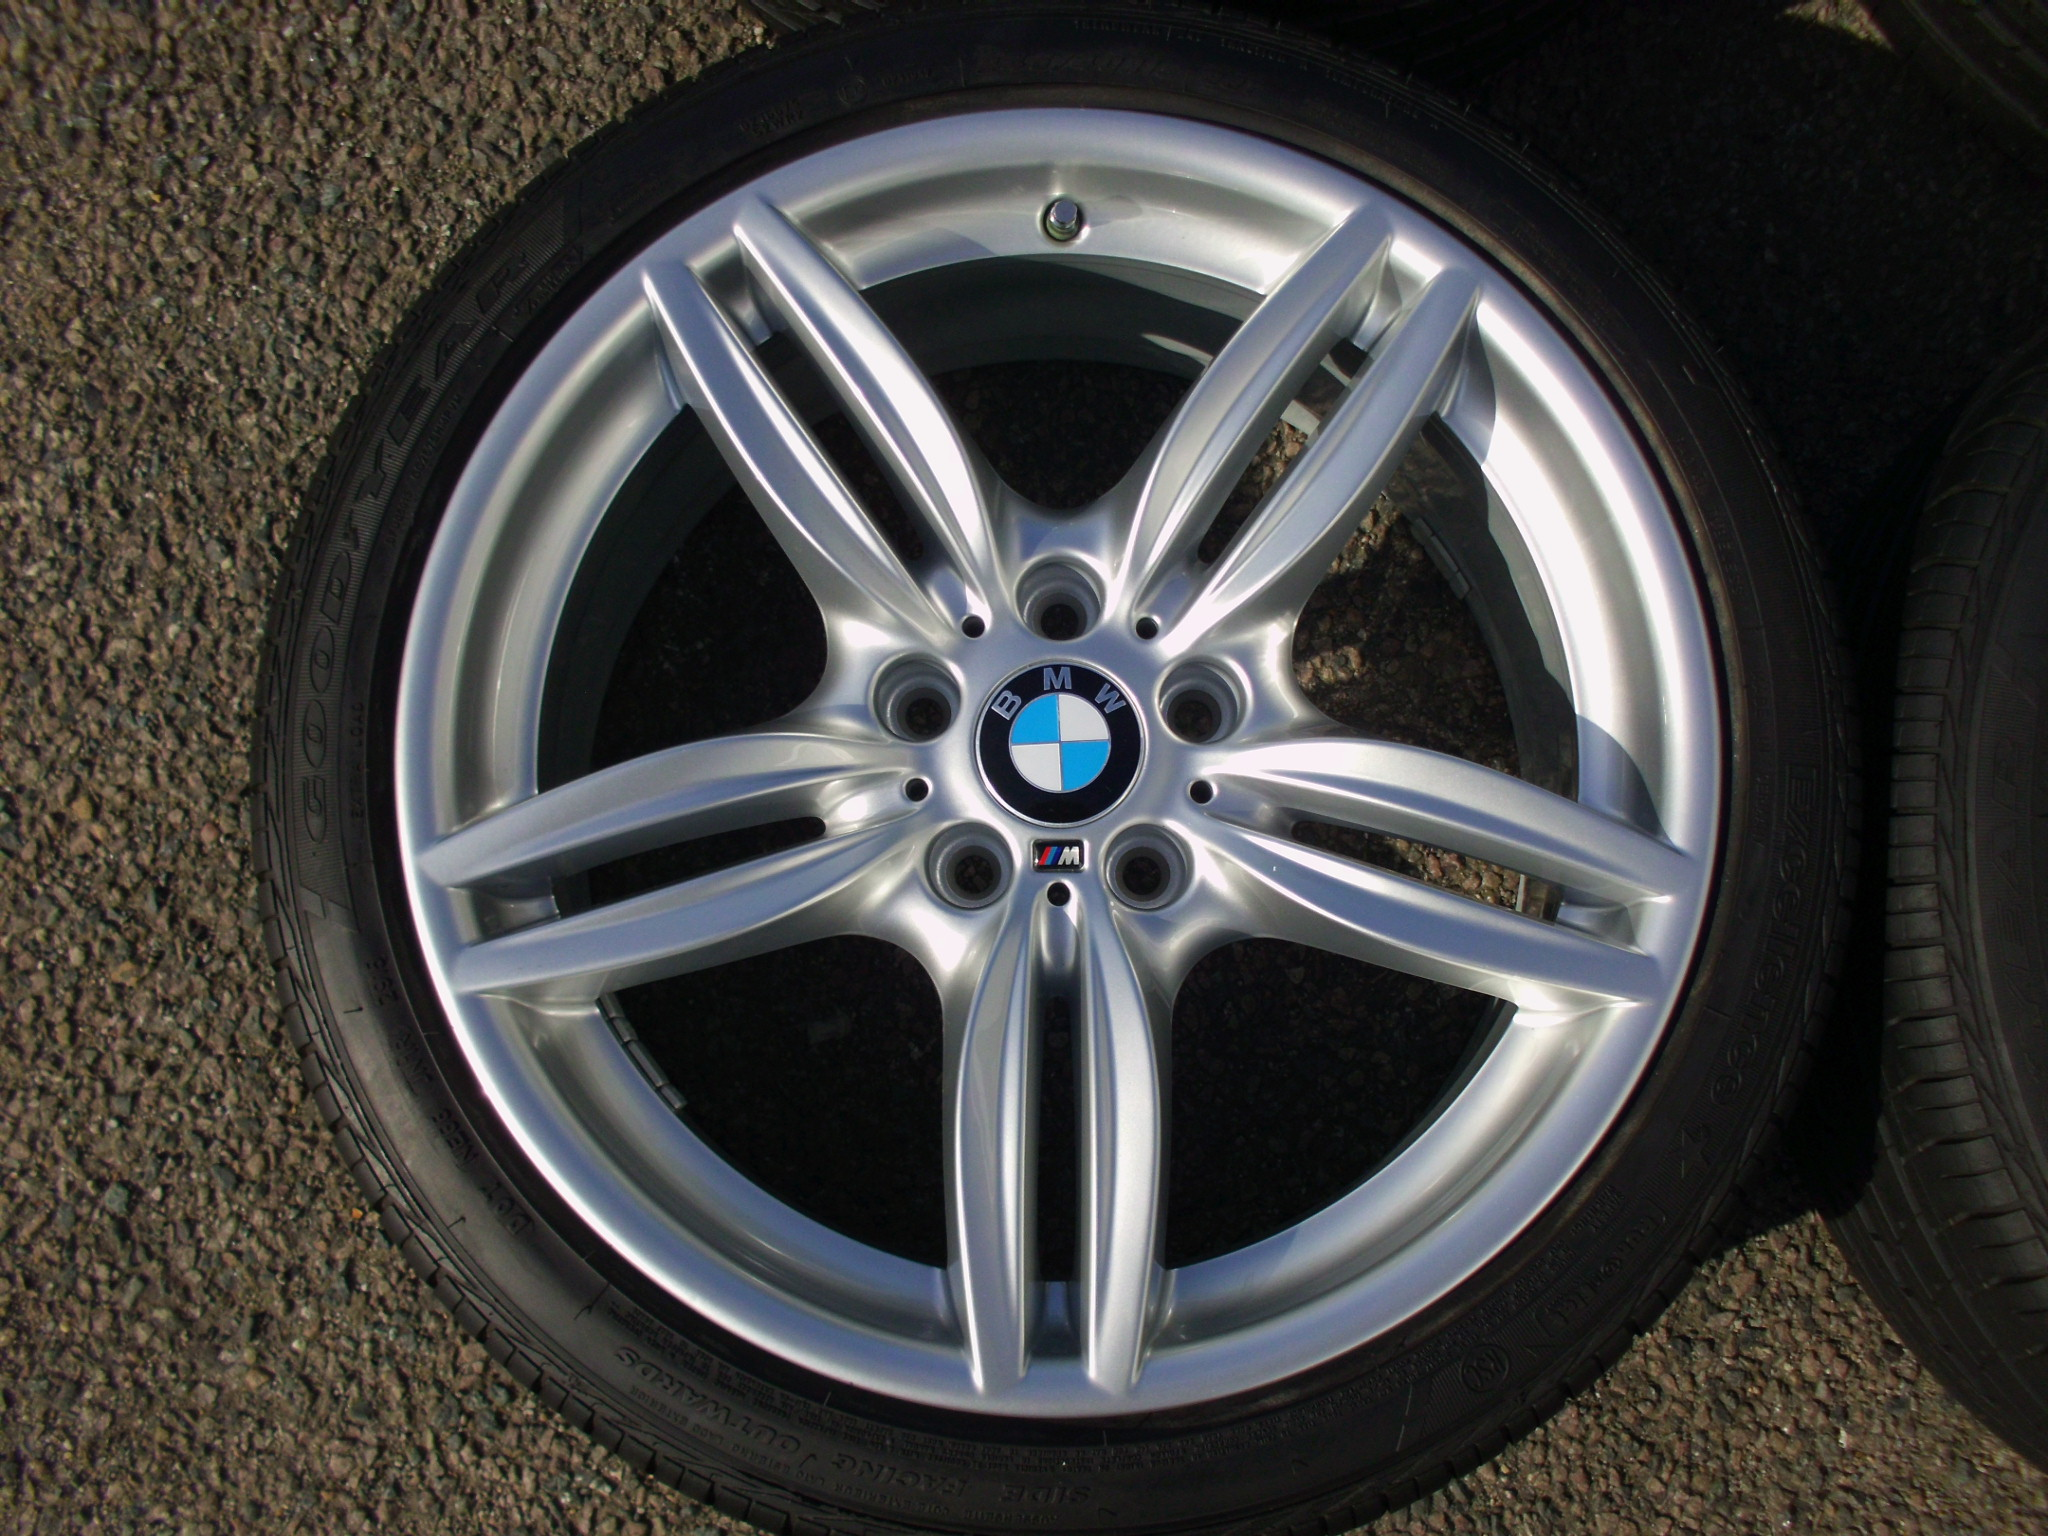 "USED 19"" GENUINE BMW F11 STYLE 351 M SPORT ALLOY WHEELS, FULLY REFURBED INC GOODYEAR RUNFLAT TYRES"